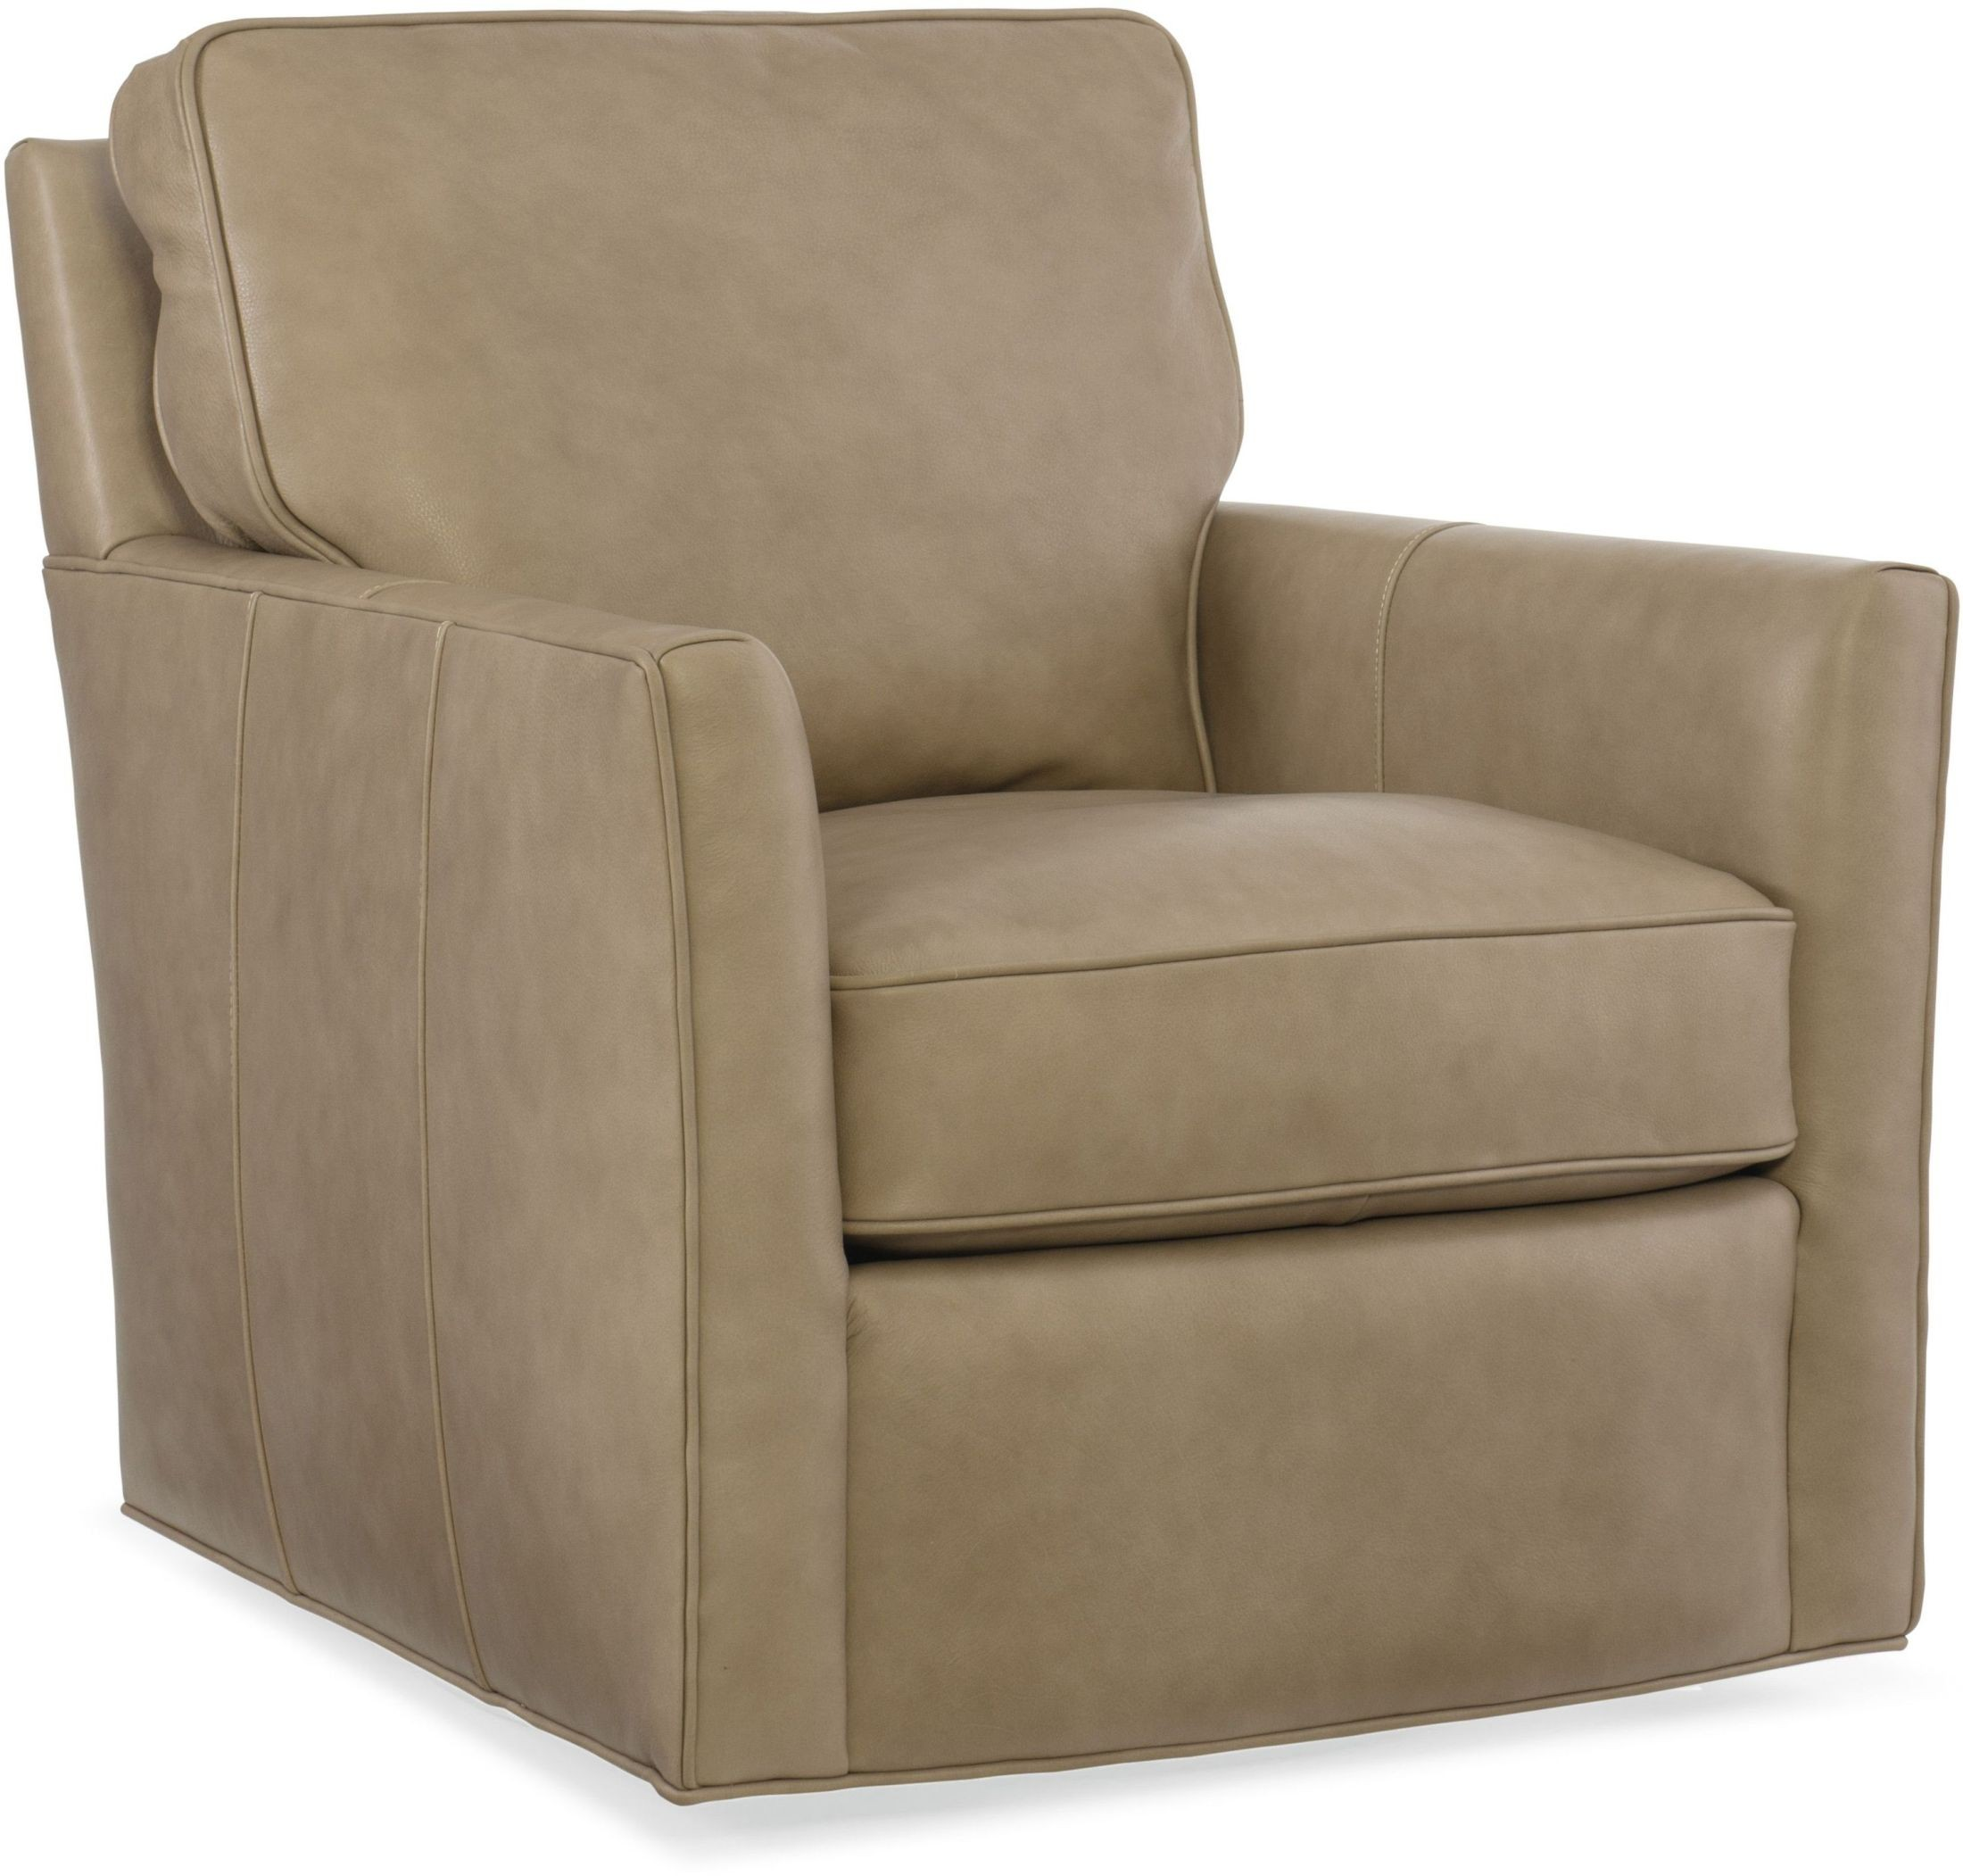 Mandy beige swivel leather club chair from hooker for Swivel club chair leather